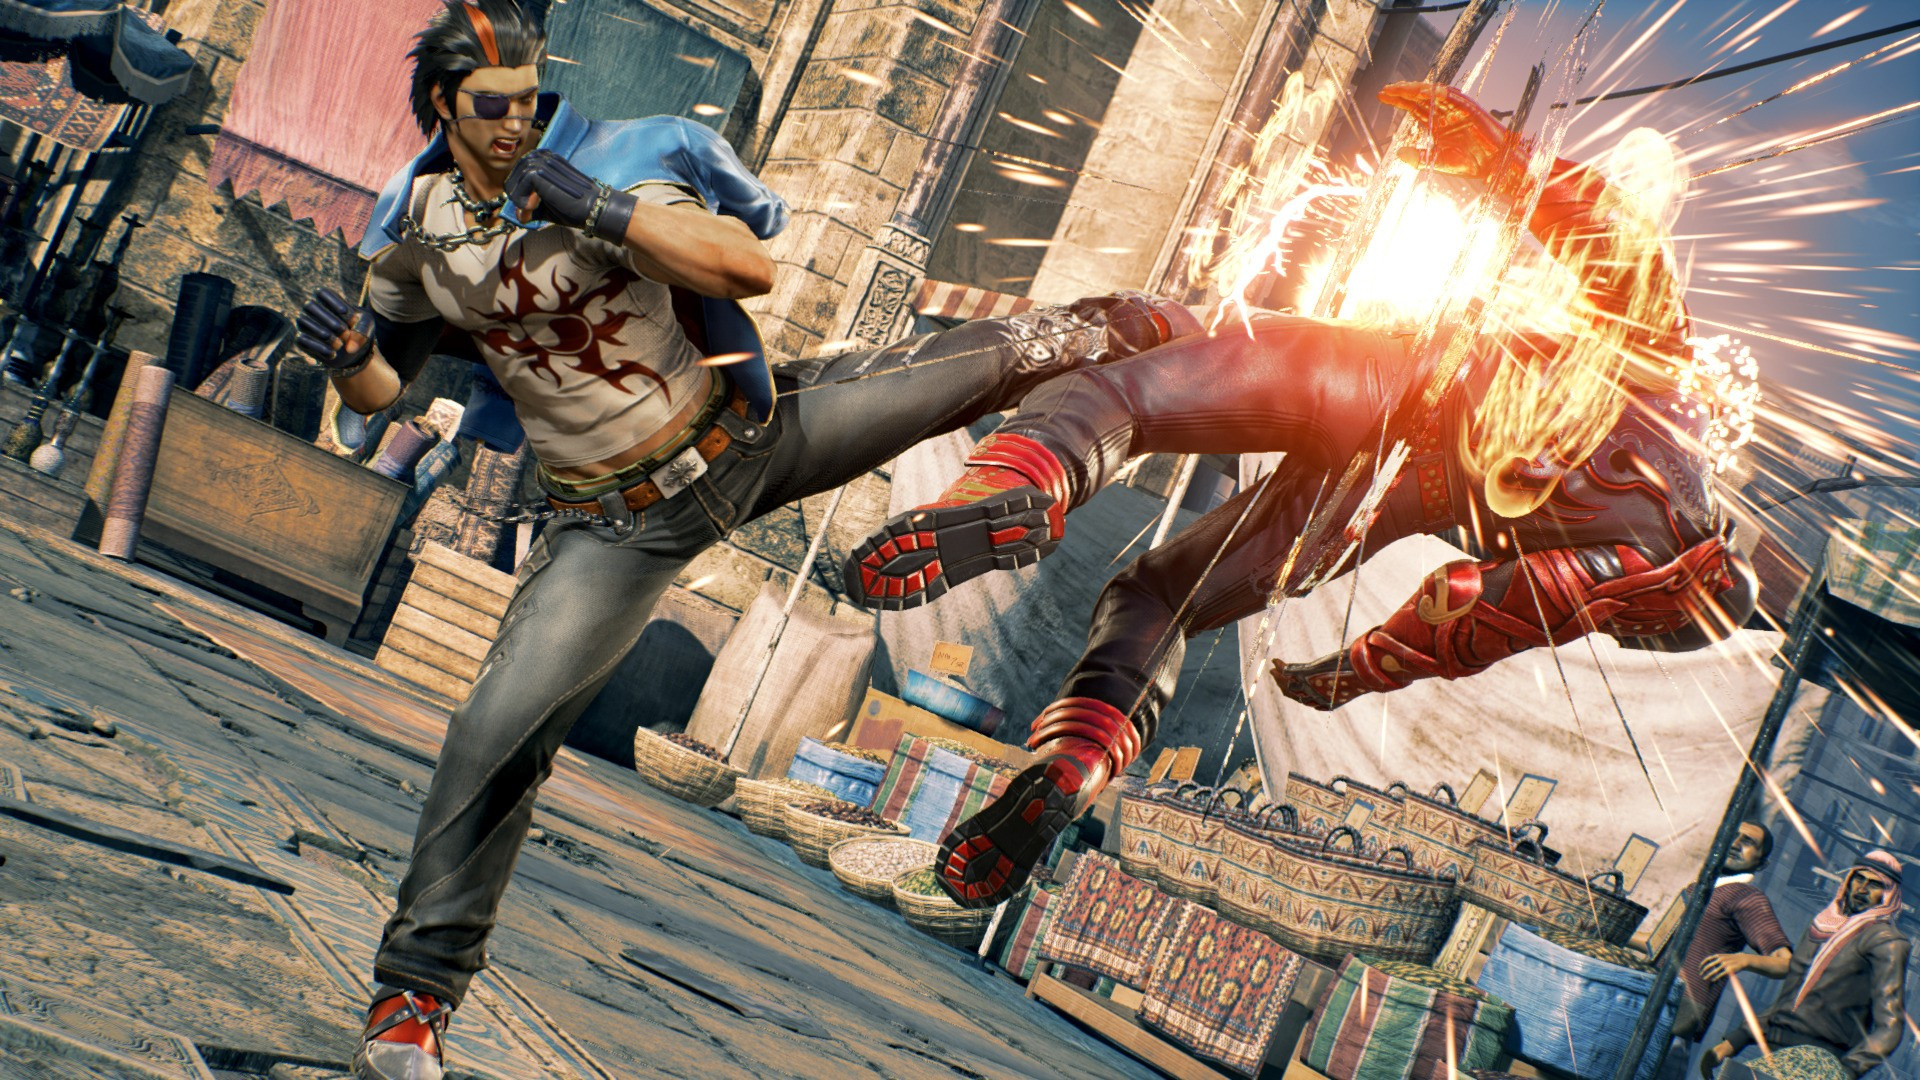 Tekken 7 - 5 Things You Should Know Before Playing Online